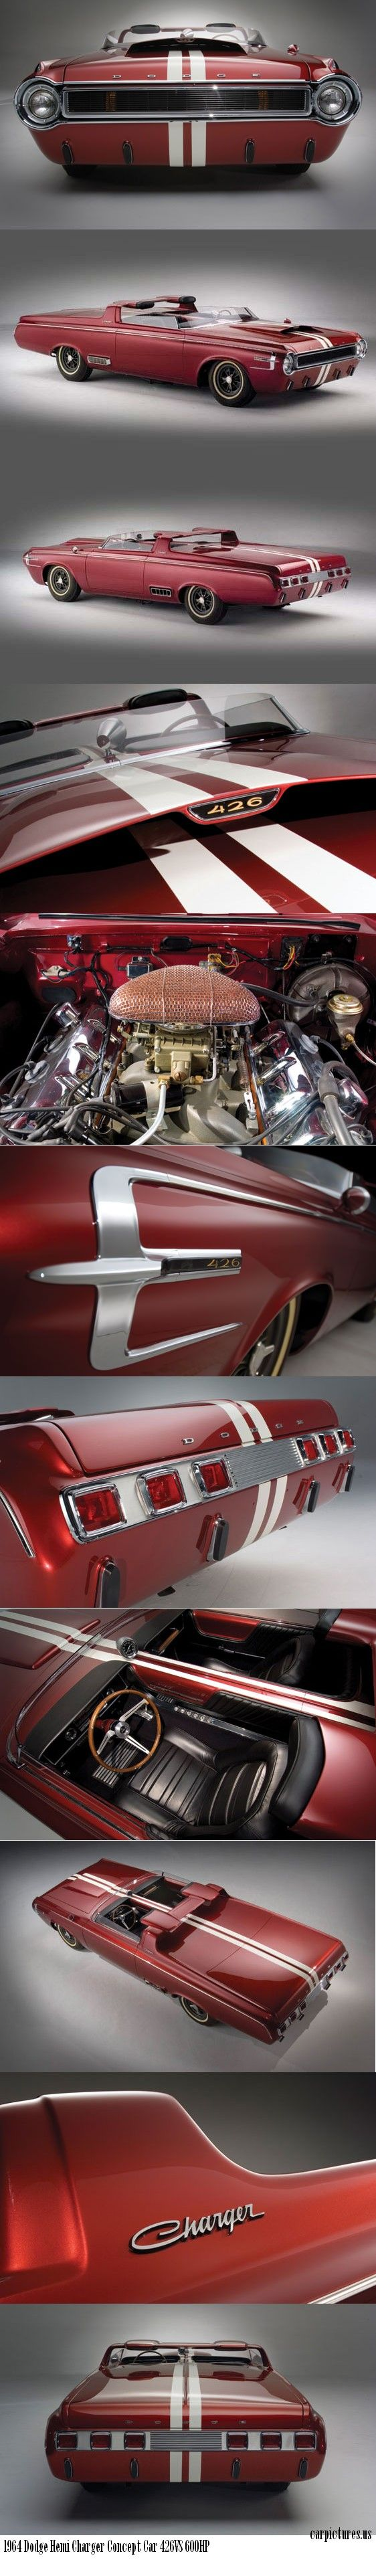 1964 Dodge Hemi Charger Concept Car. 426 Hemi, 600HP. I\'m not into ...